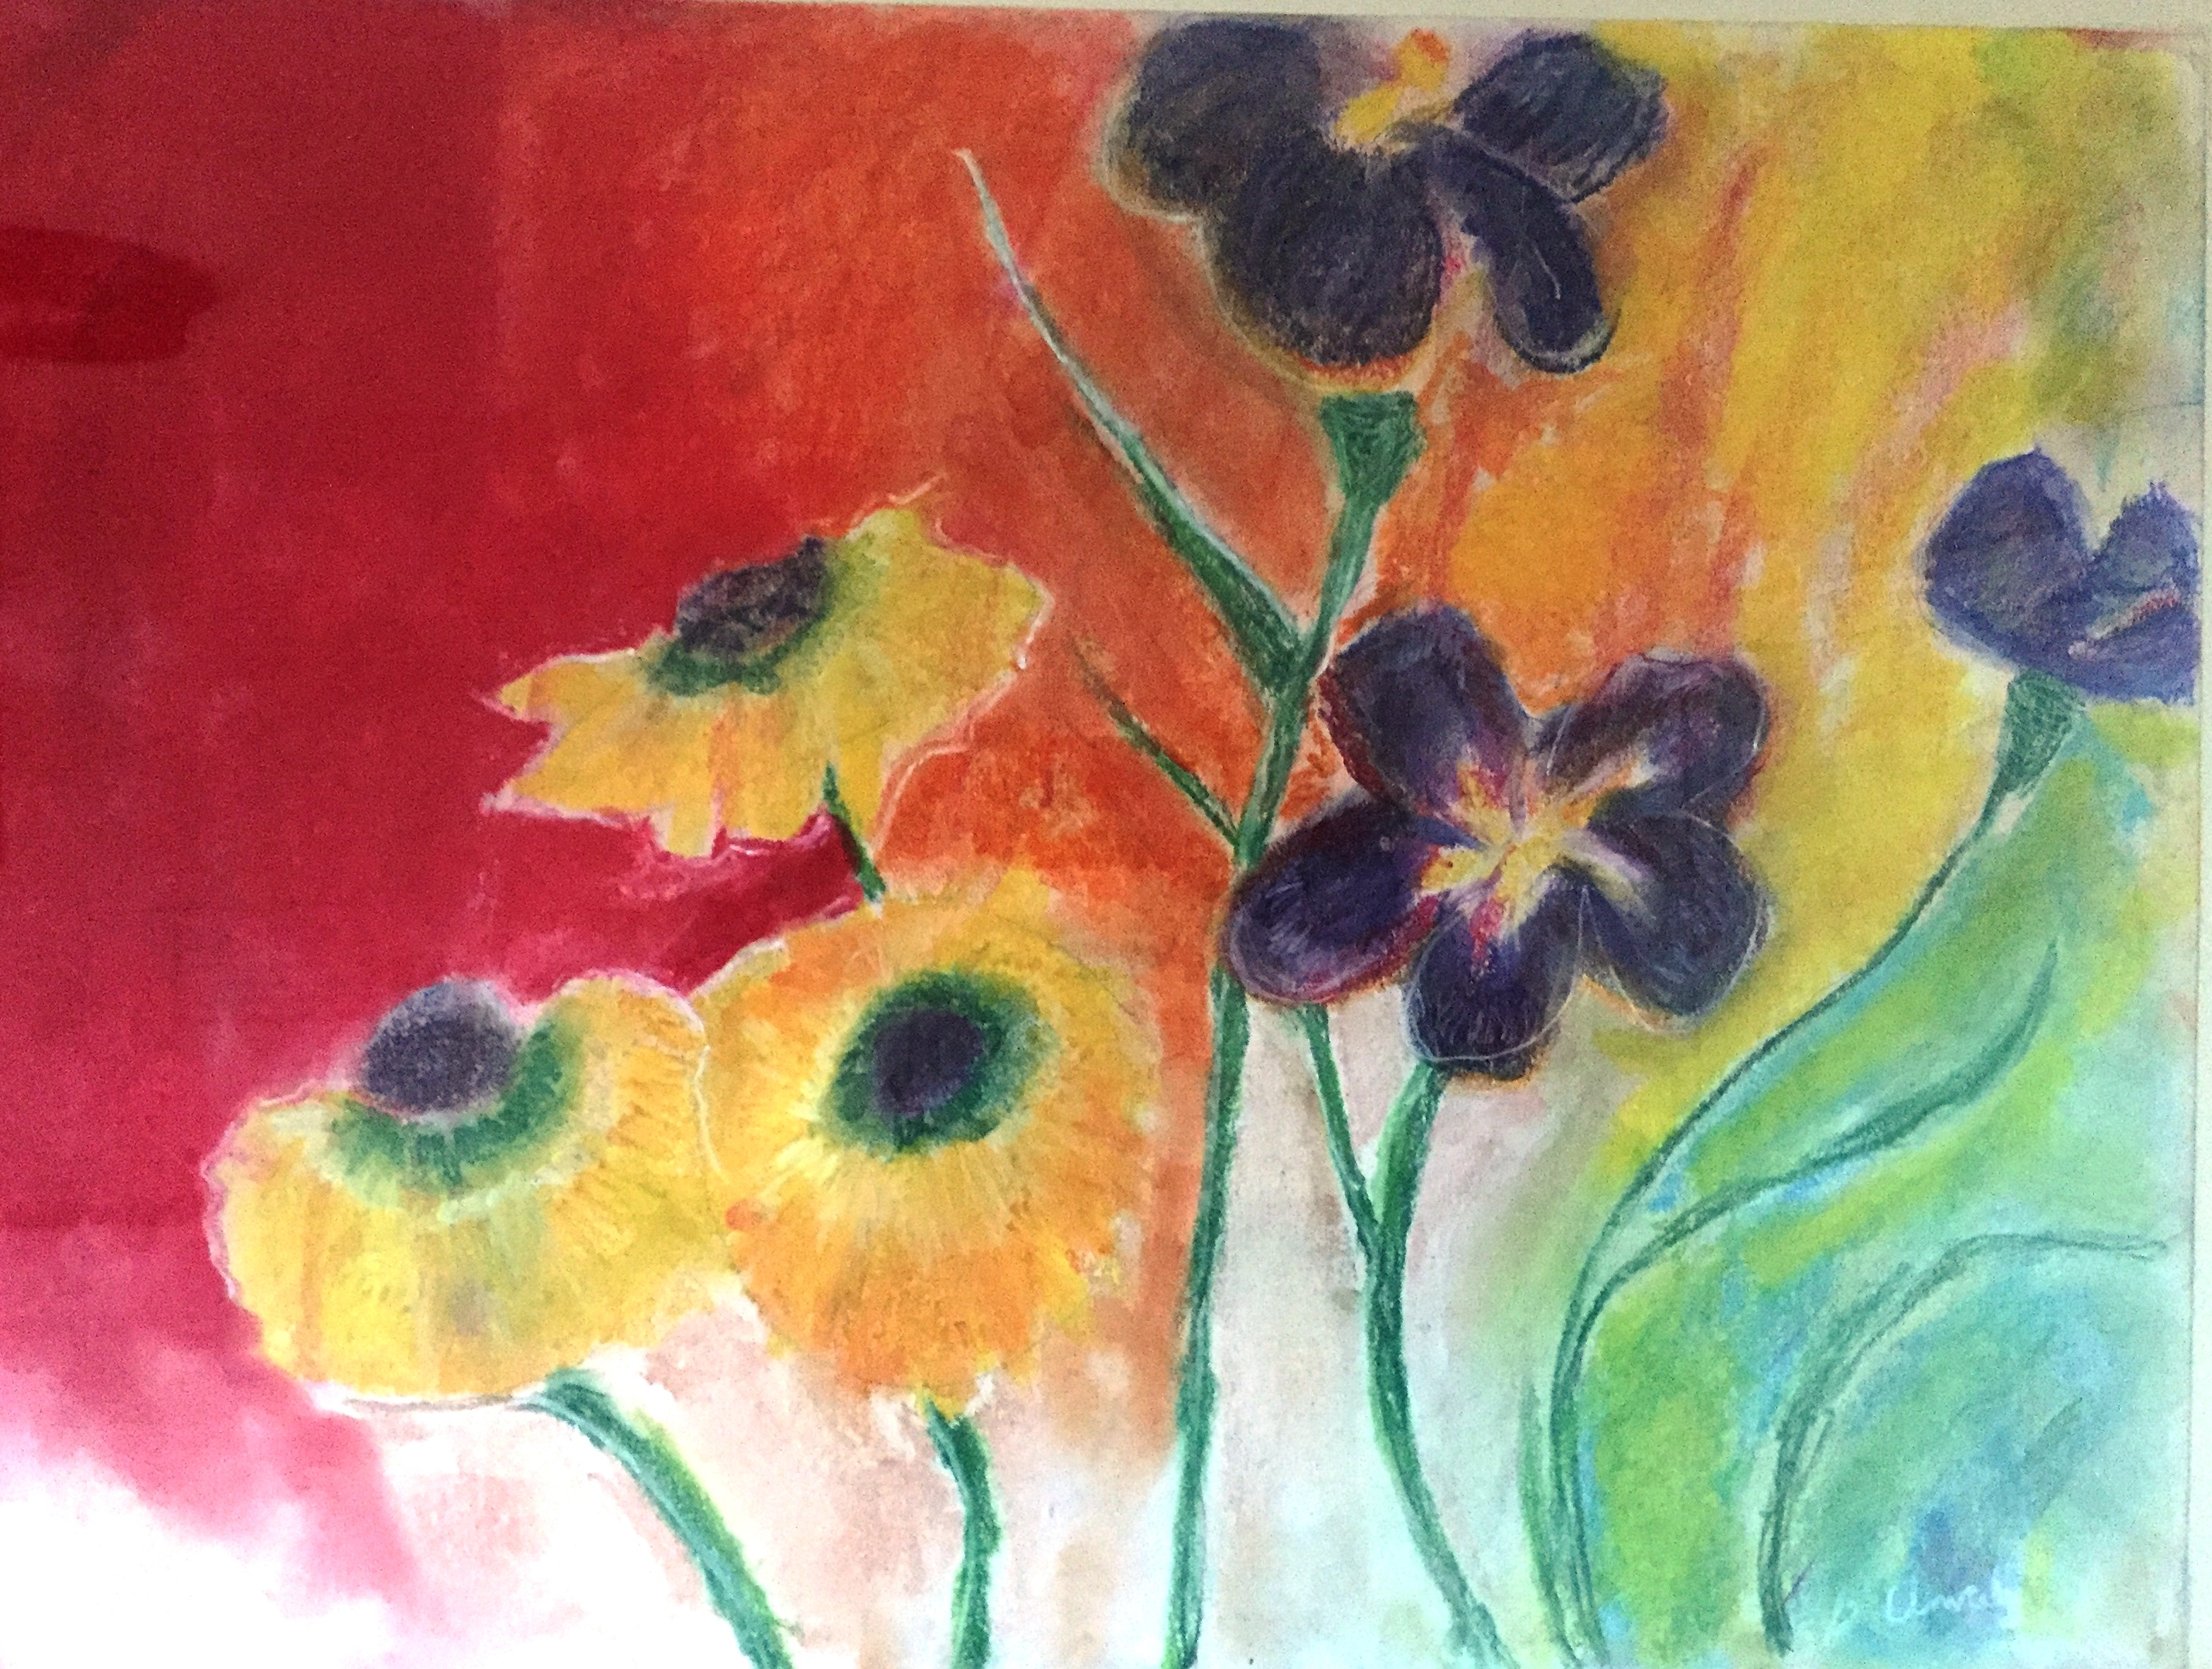 This beautiful painting of flowers opening into the sun was given to me by a former client. Once so depressed that she could hardly get out of bed, her depression lifted and she began to paint again. This very special piece reminds me of the capacity of the human soul to heal.